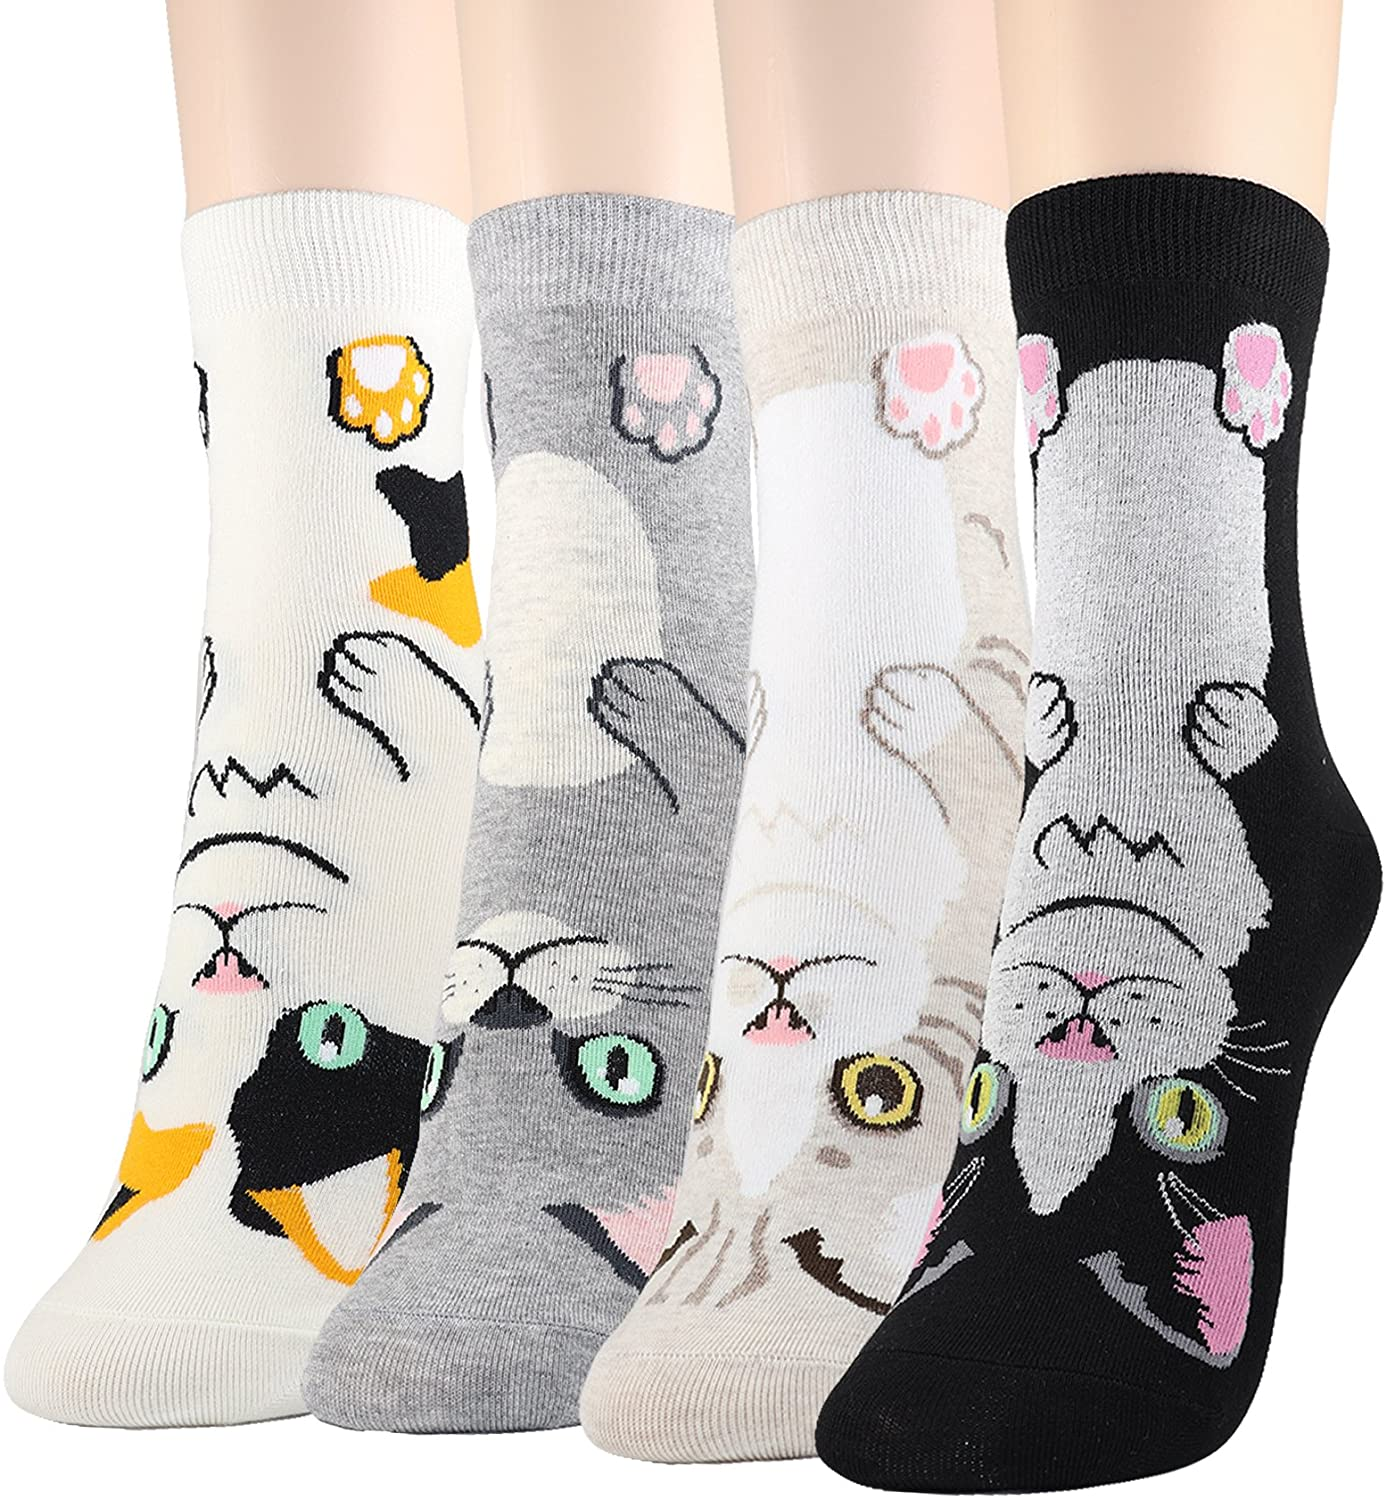 DearMy Womens Cute Design Casual Cotton Crew Socks   One Size Fits All   Gifts for Women